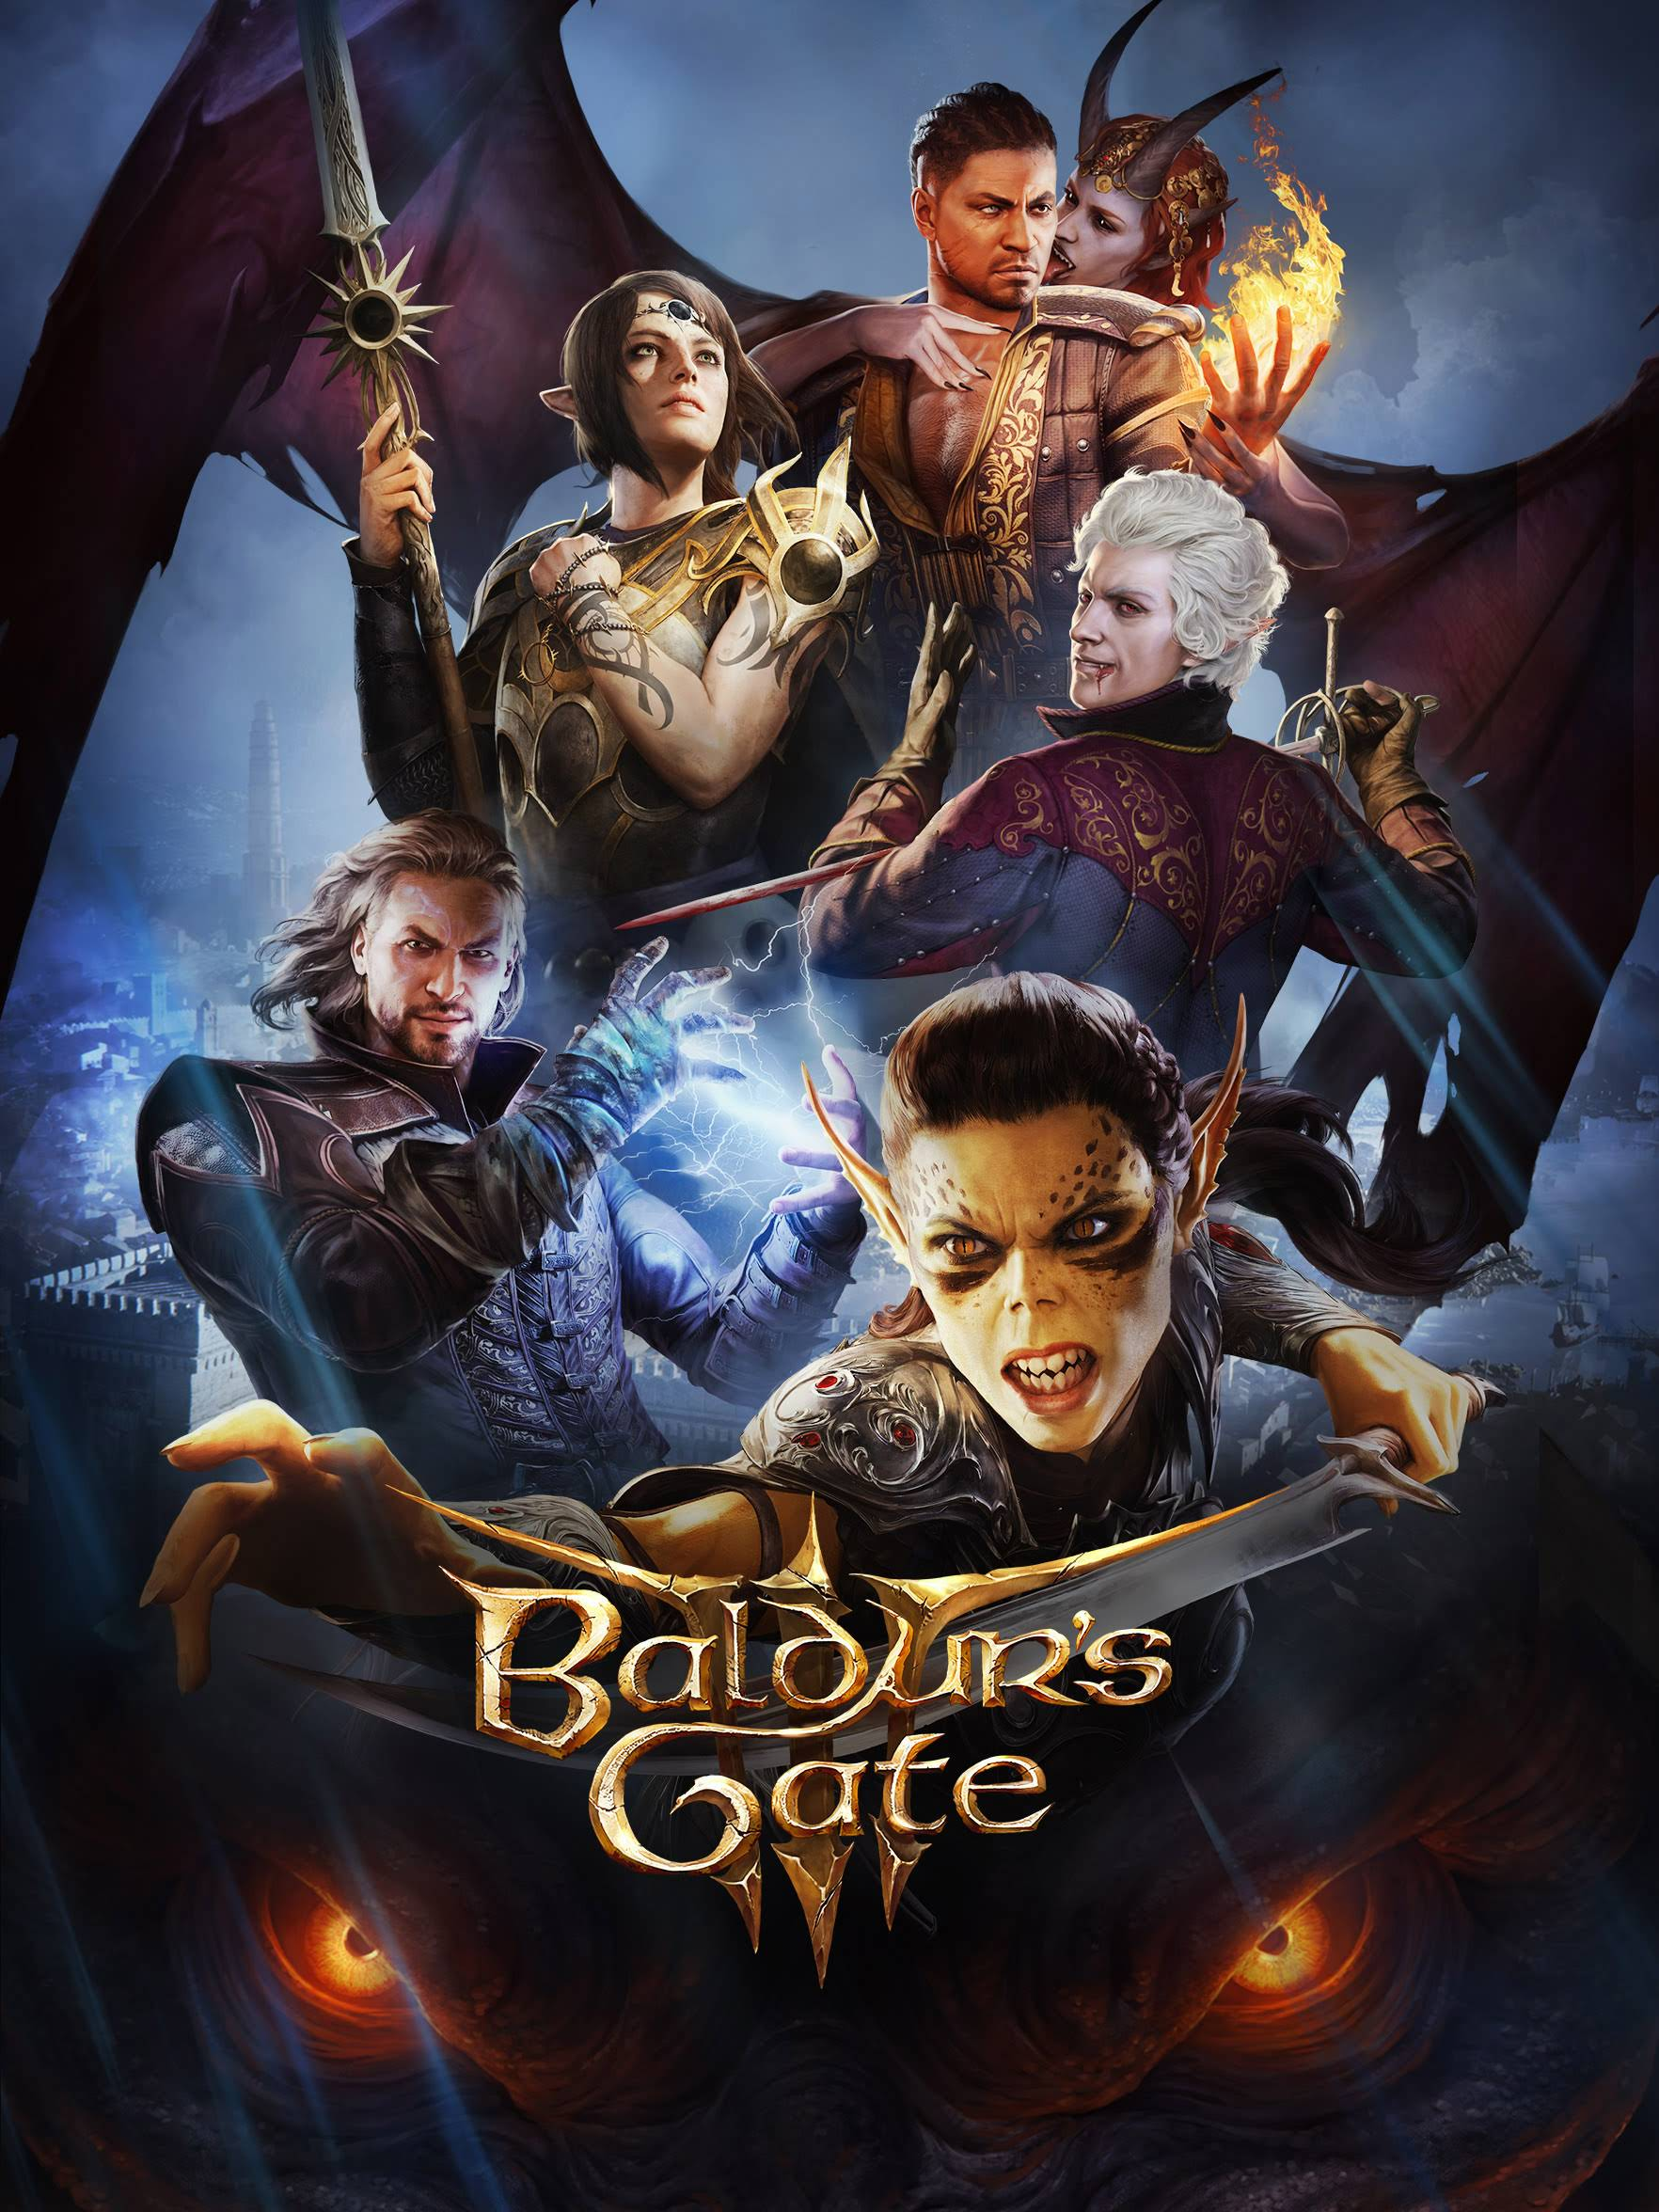 Game's poster image.